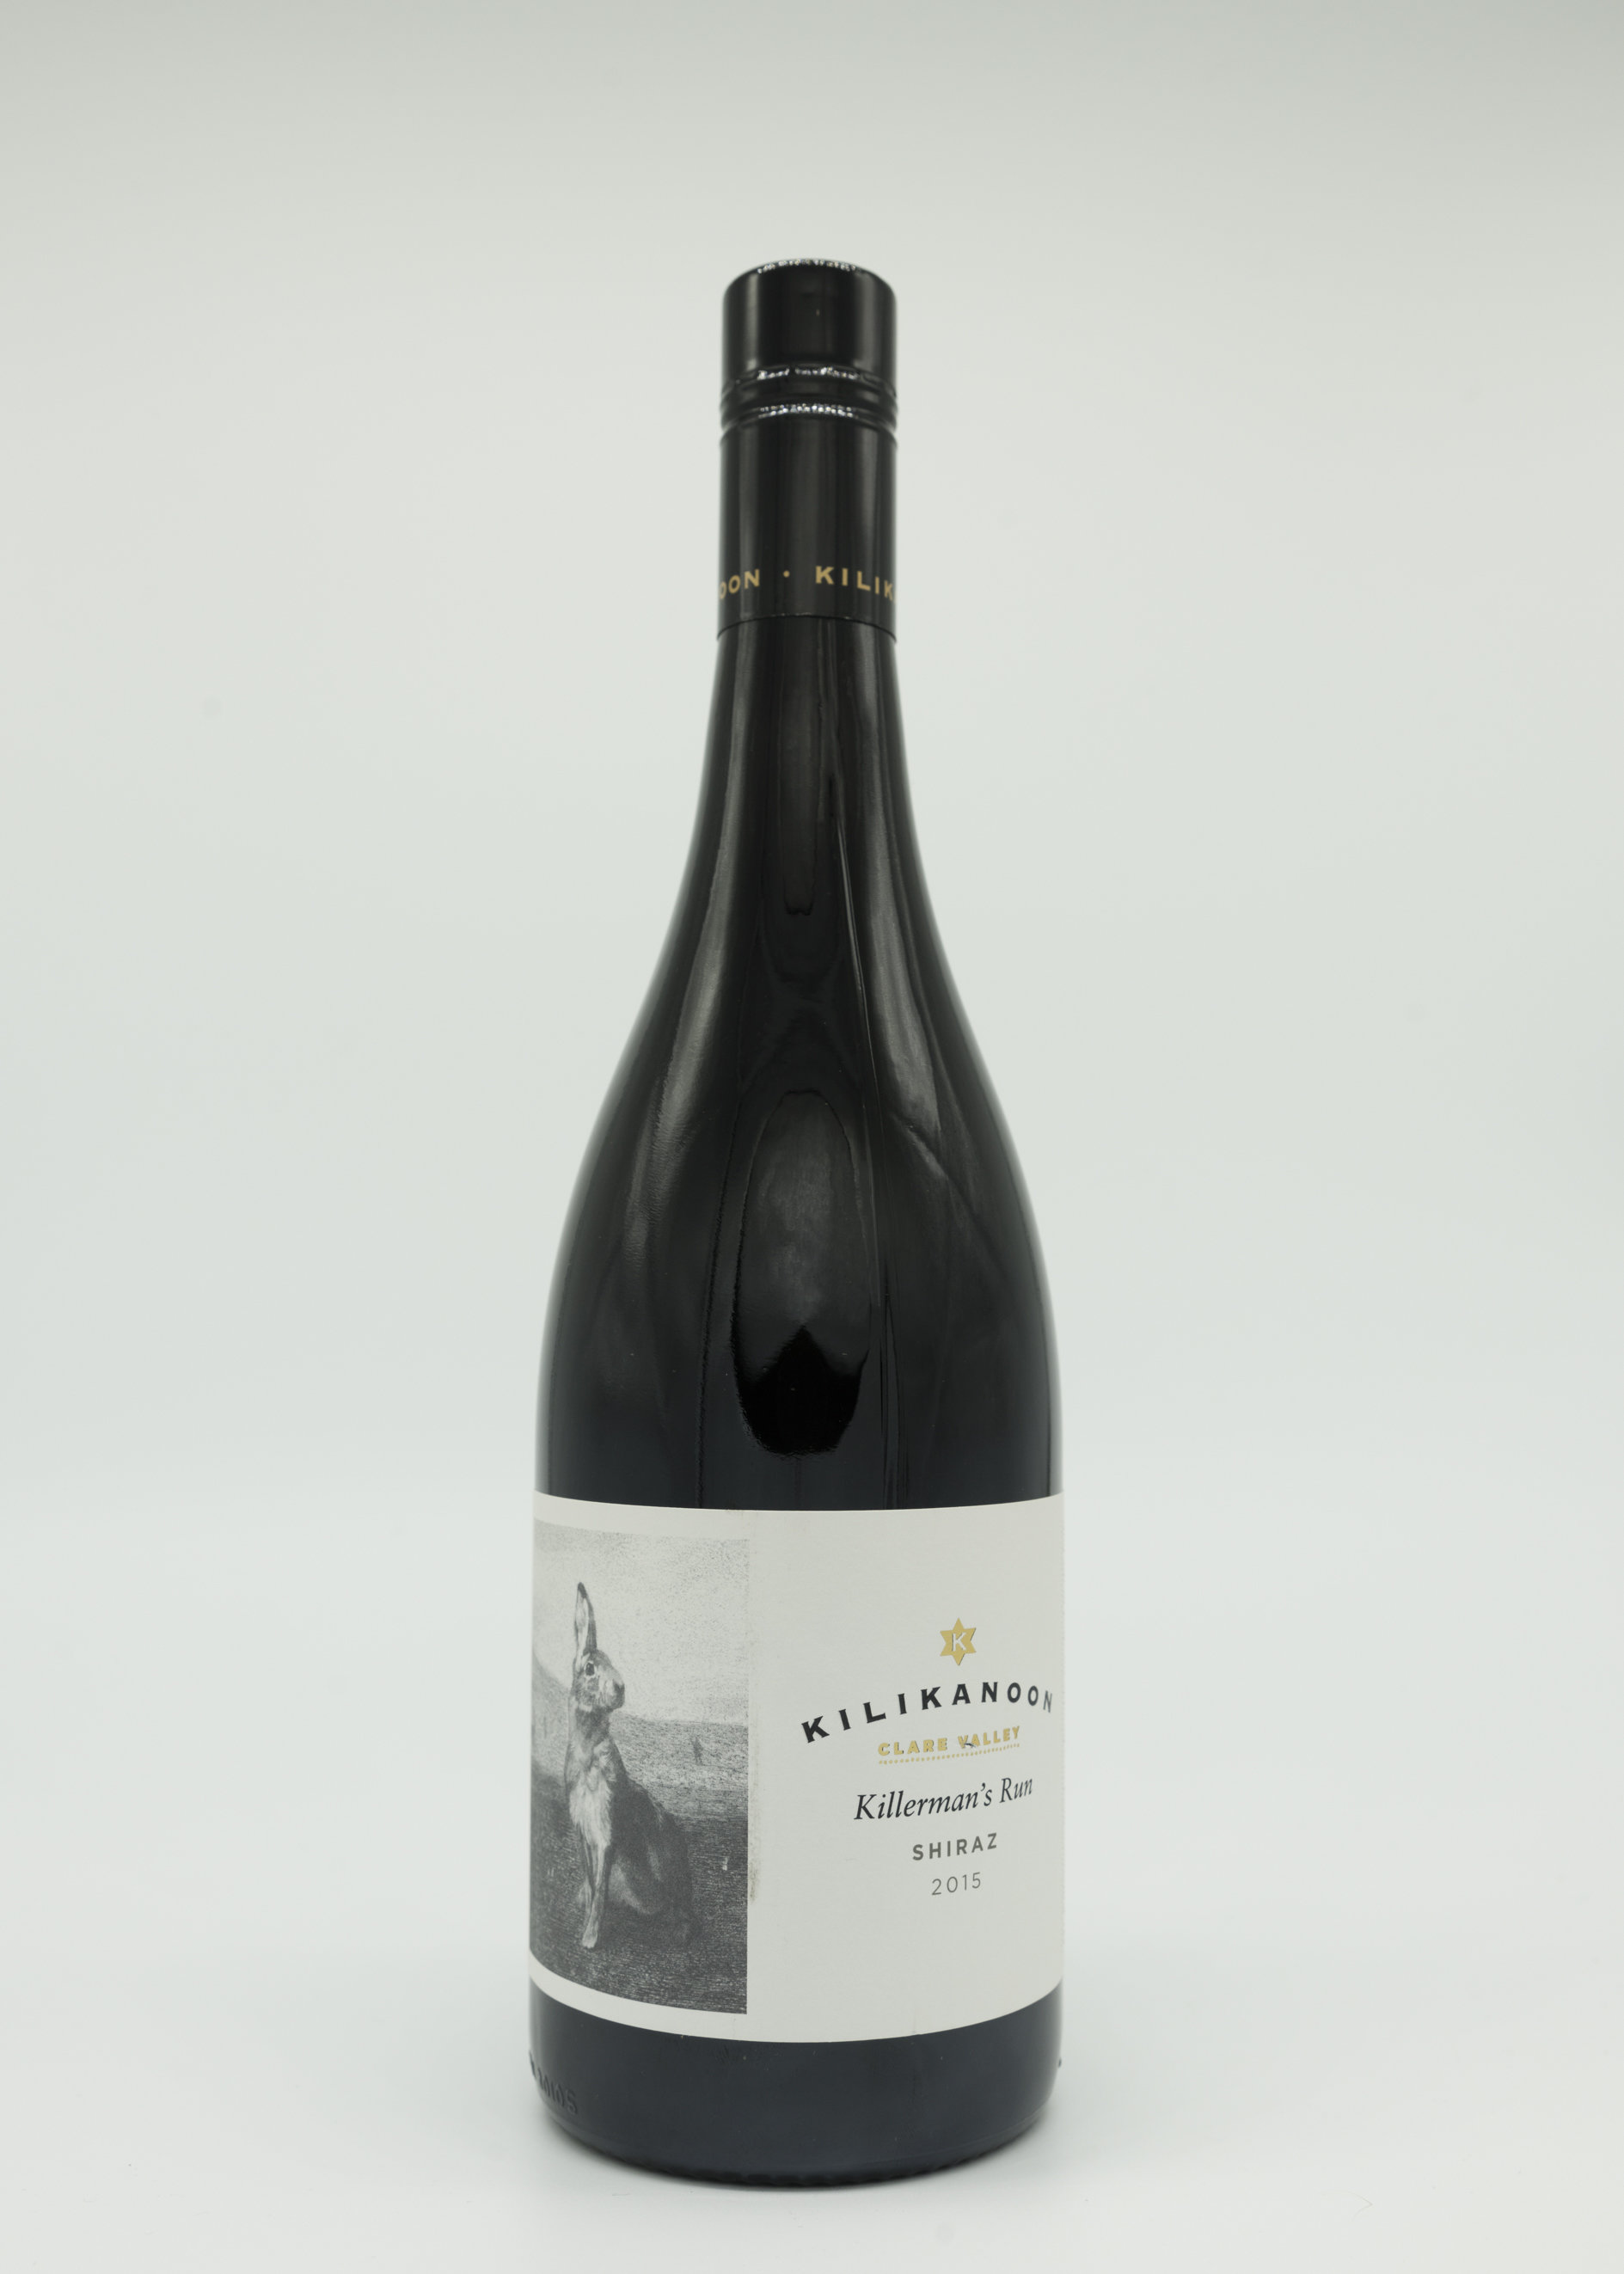 Shiraz 'Killerman's Run' Kilikanoon 2016 00043